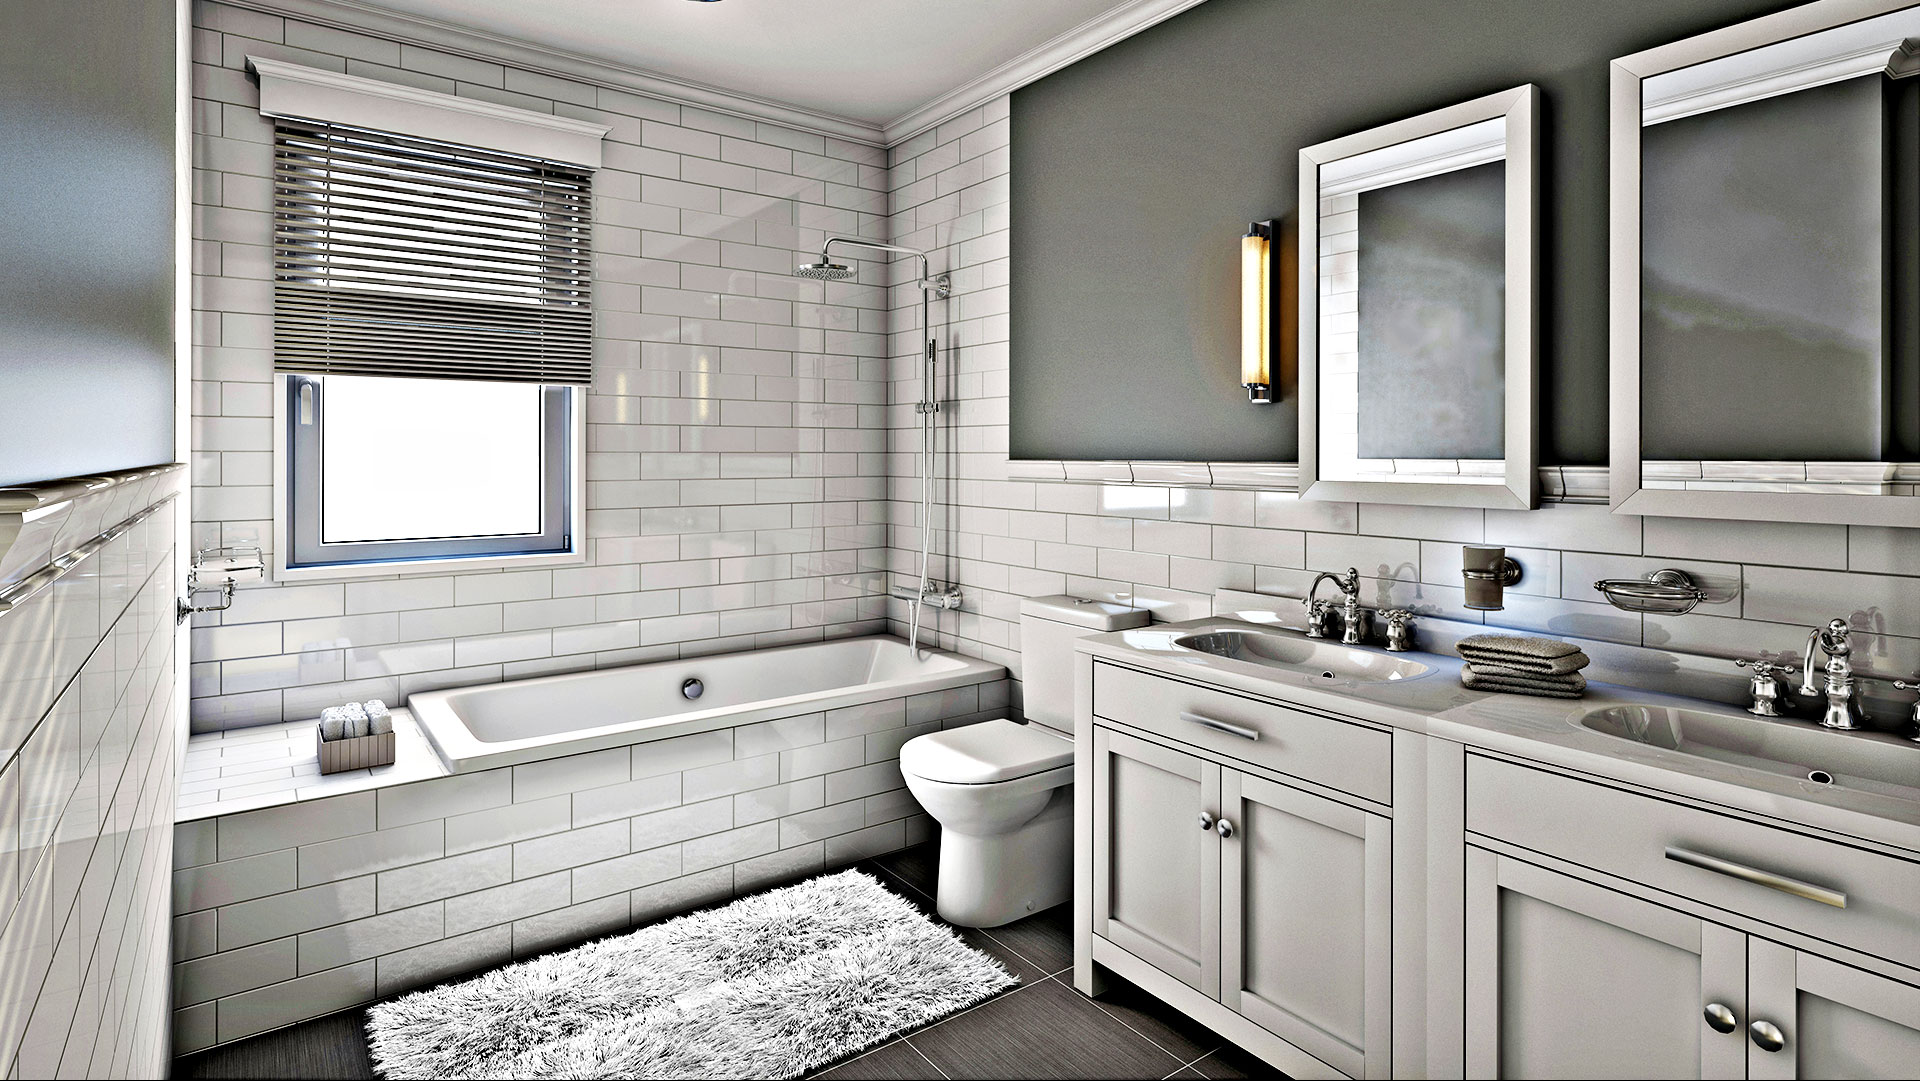 Spencer & Sons Construction Remodeled Bathroom